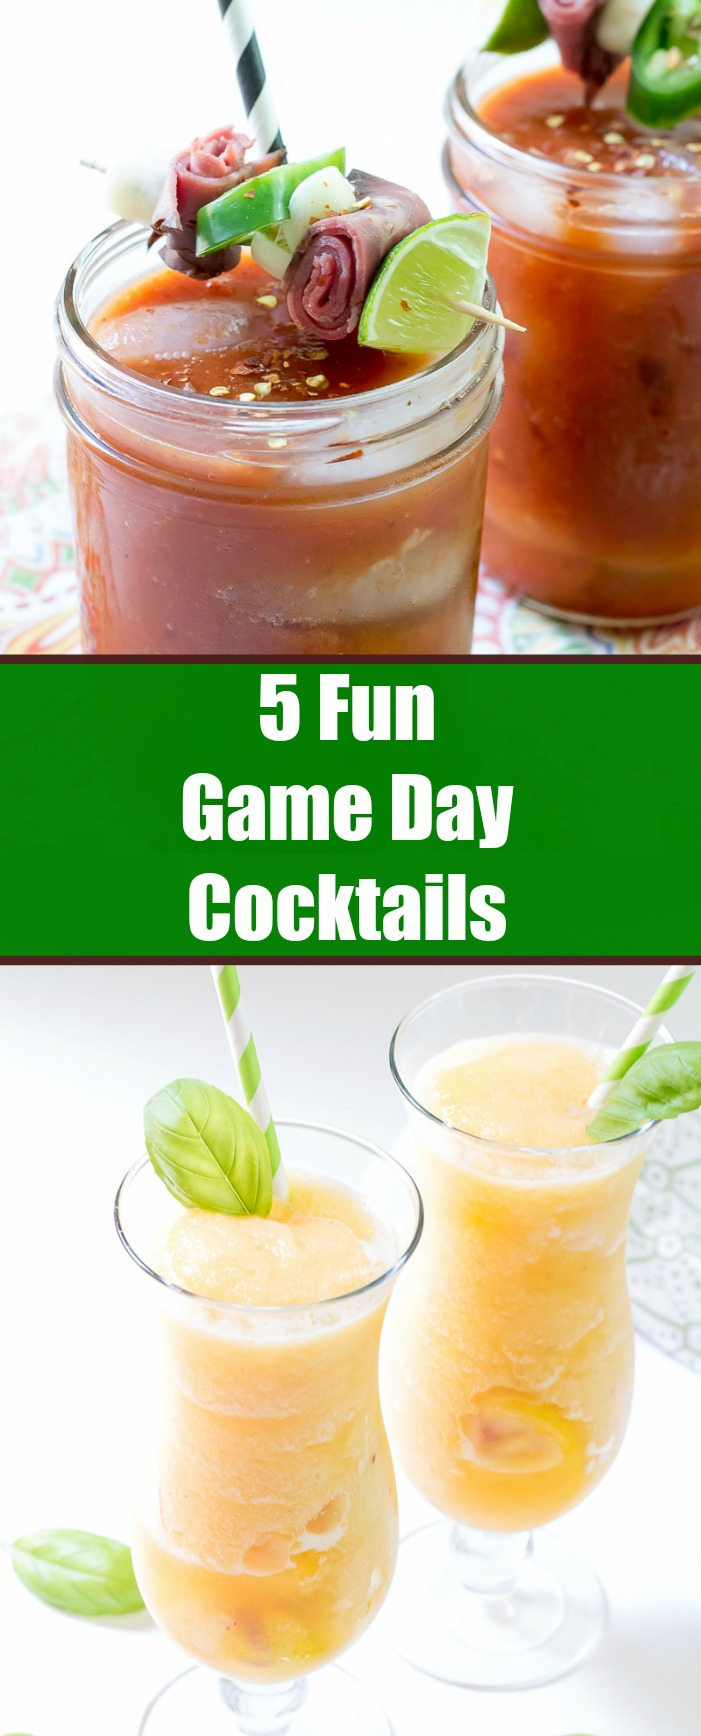 5 Fun Game Day Cocktail recipes